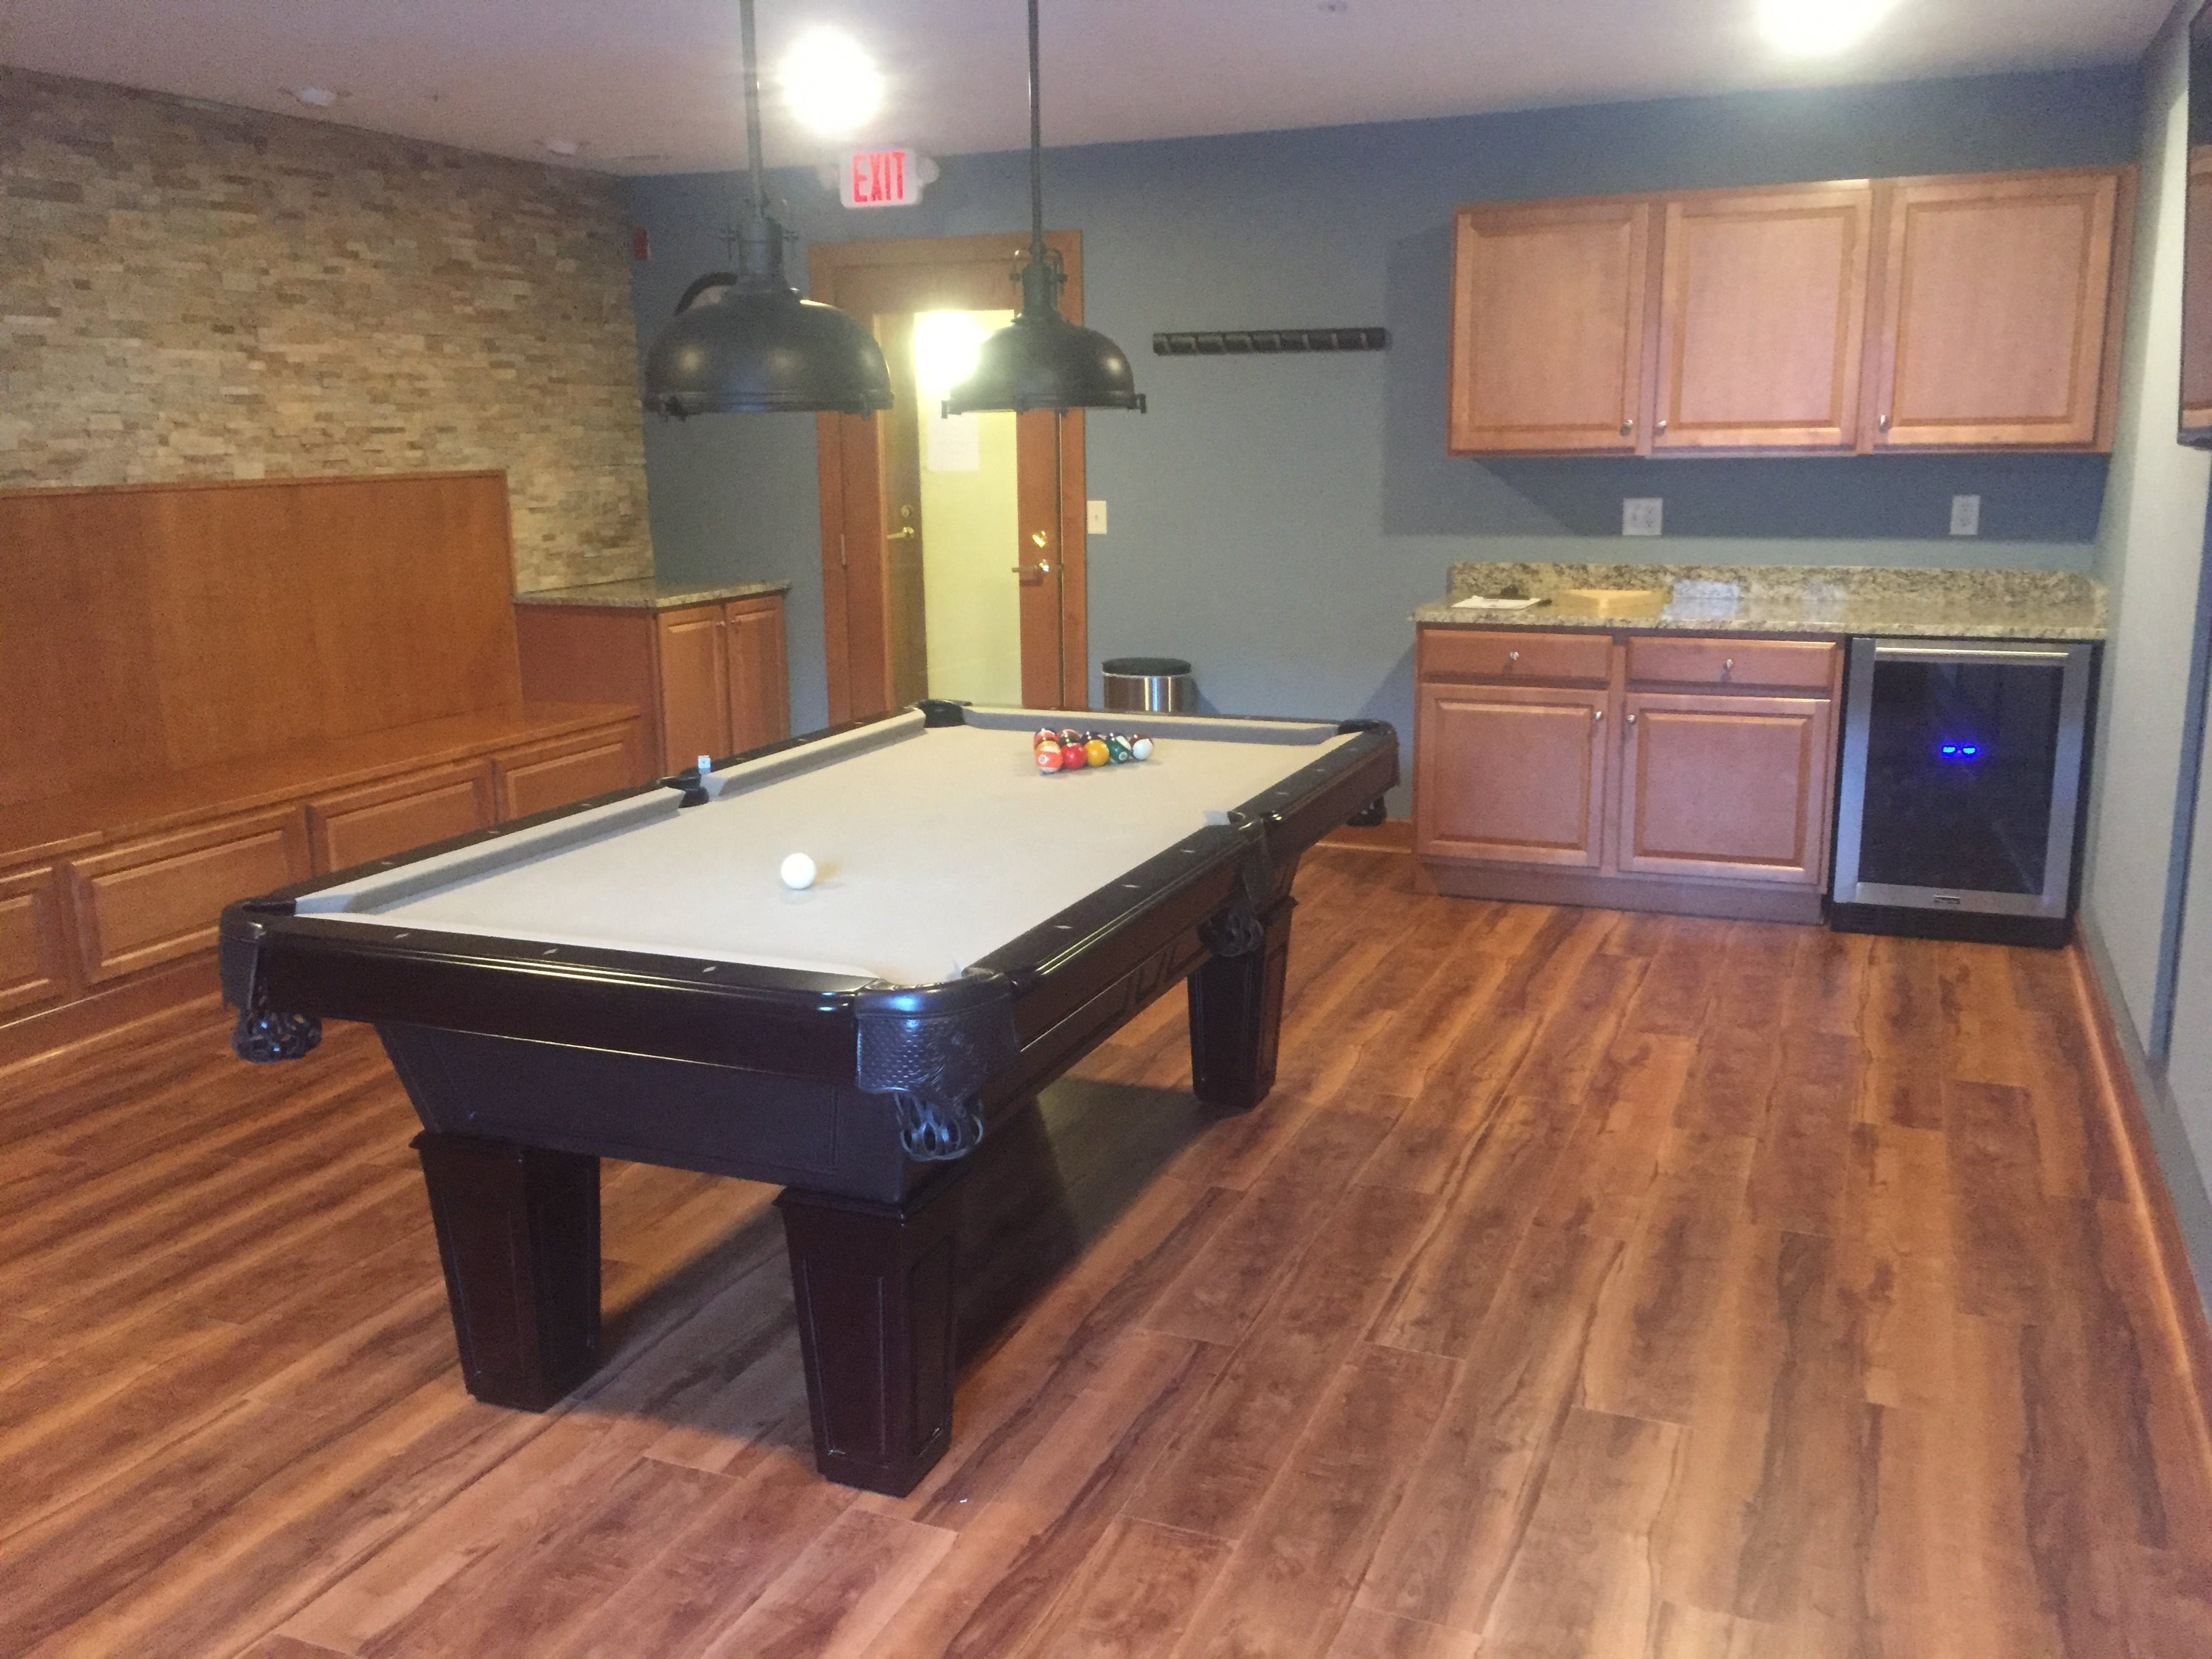 Game Room at Wildwood Highlands Apartments & Townhomes 55+, N78w17445 Wildwood Drive, WI 53051